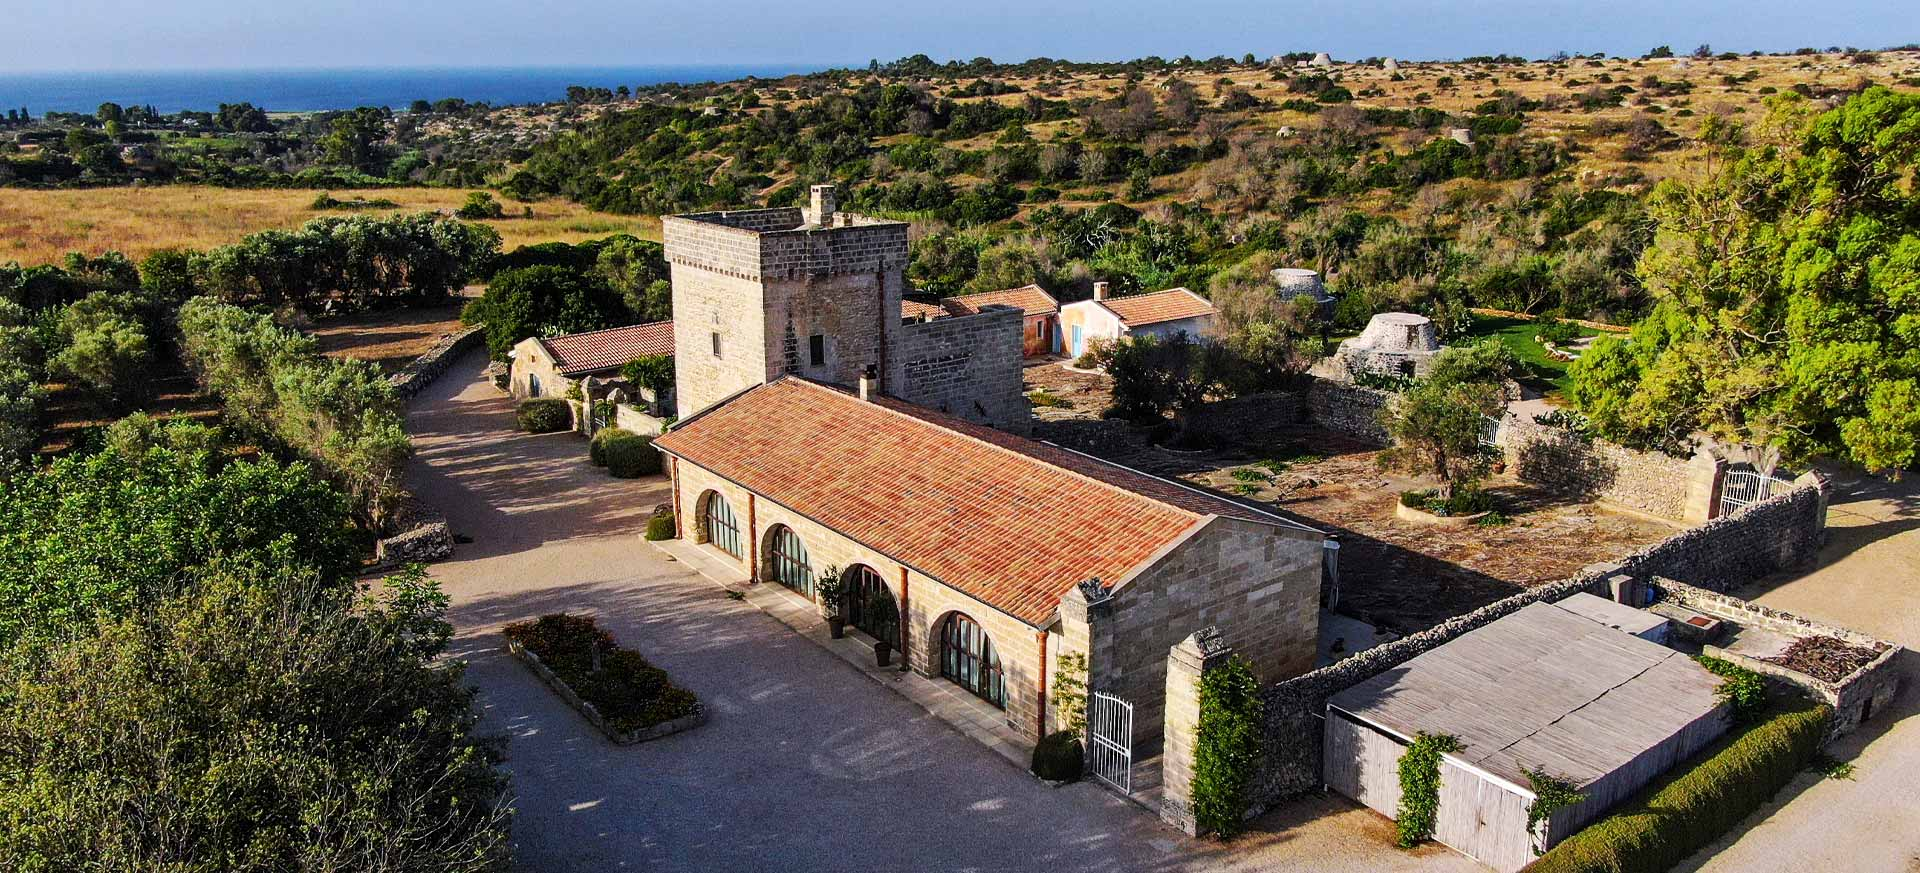 Puglia small luxury hotels and bed and breakfasts hote for Charming small hotels